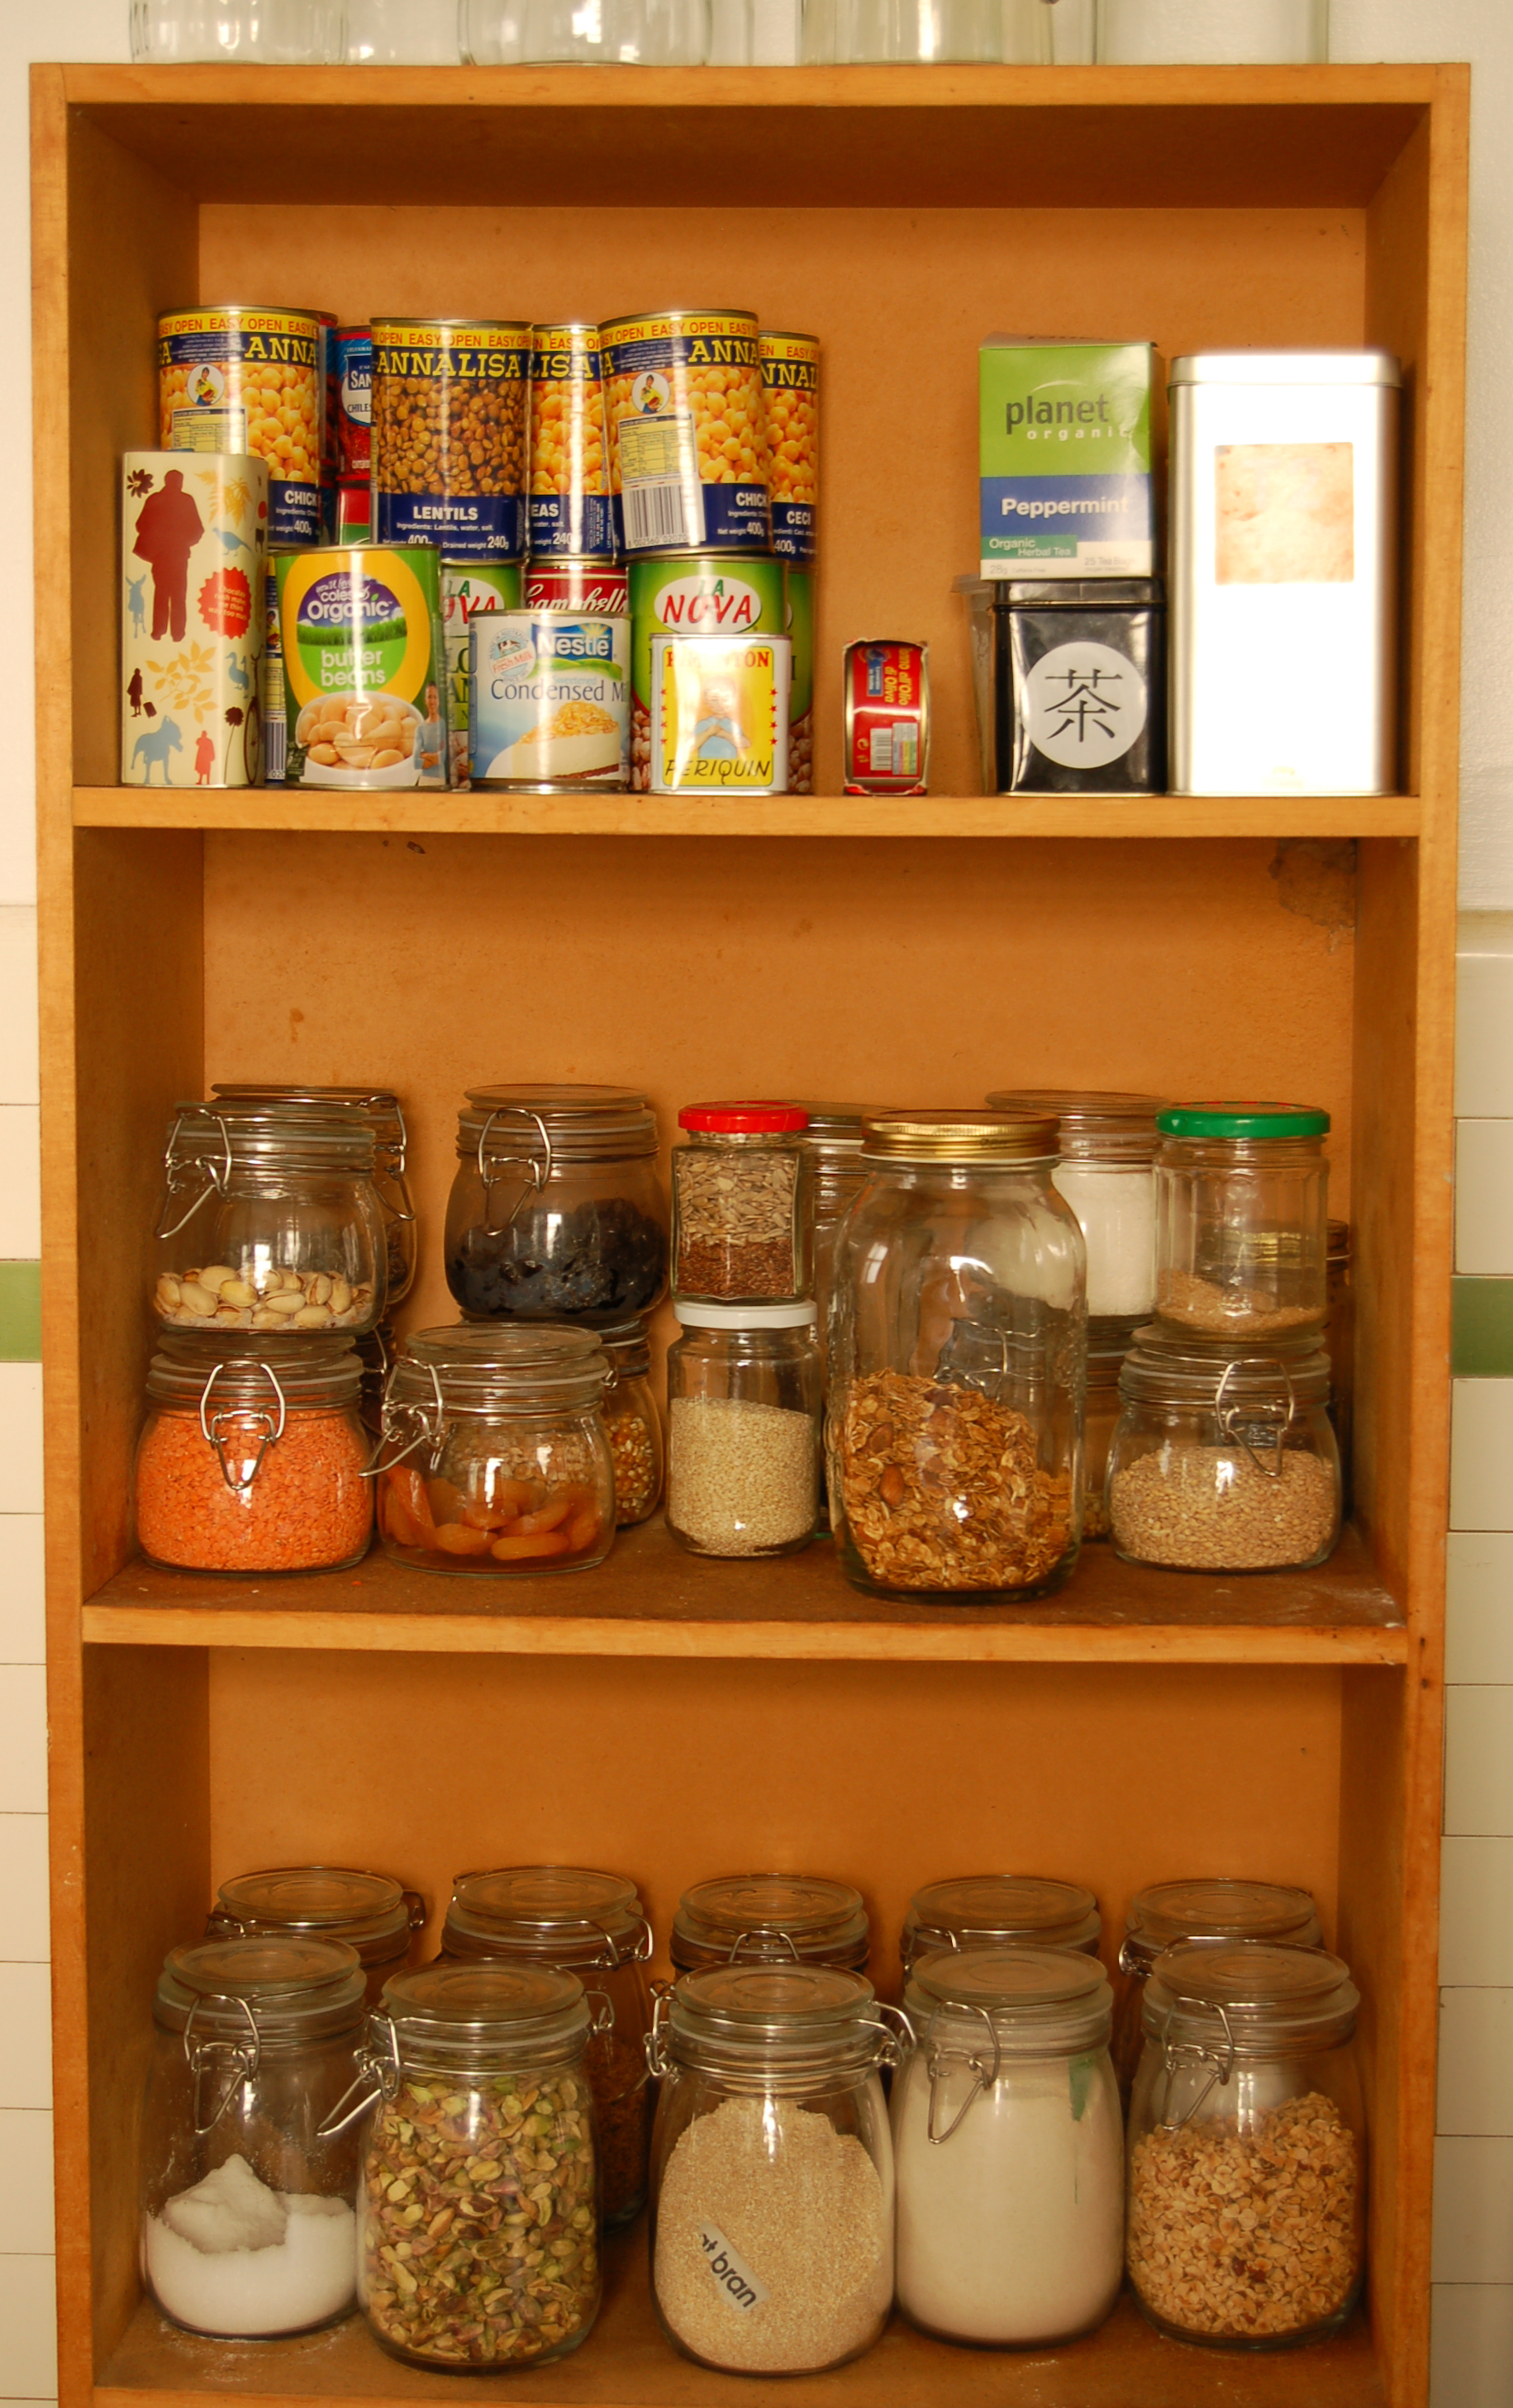 a stocked pantry full of canned goods